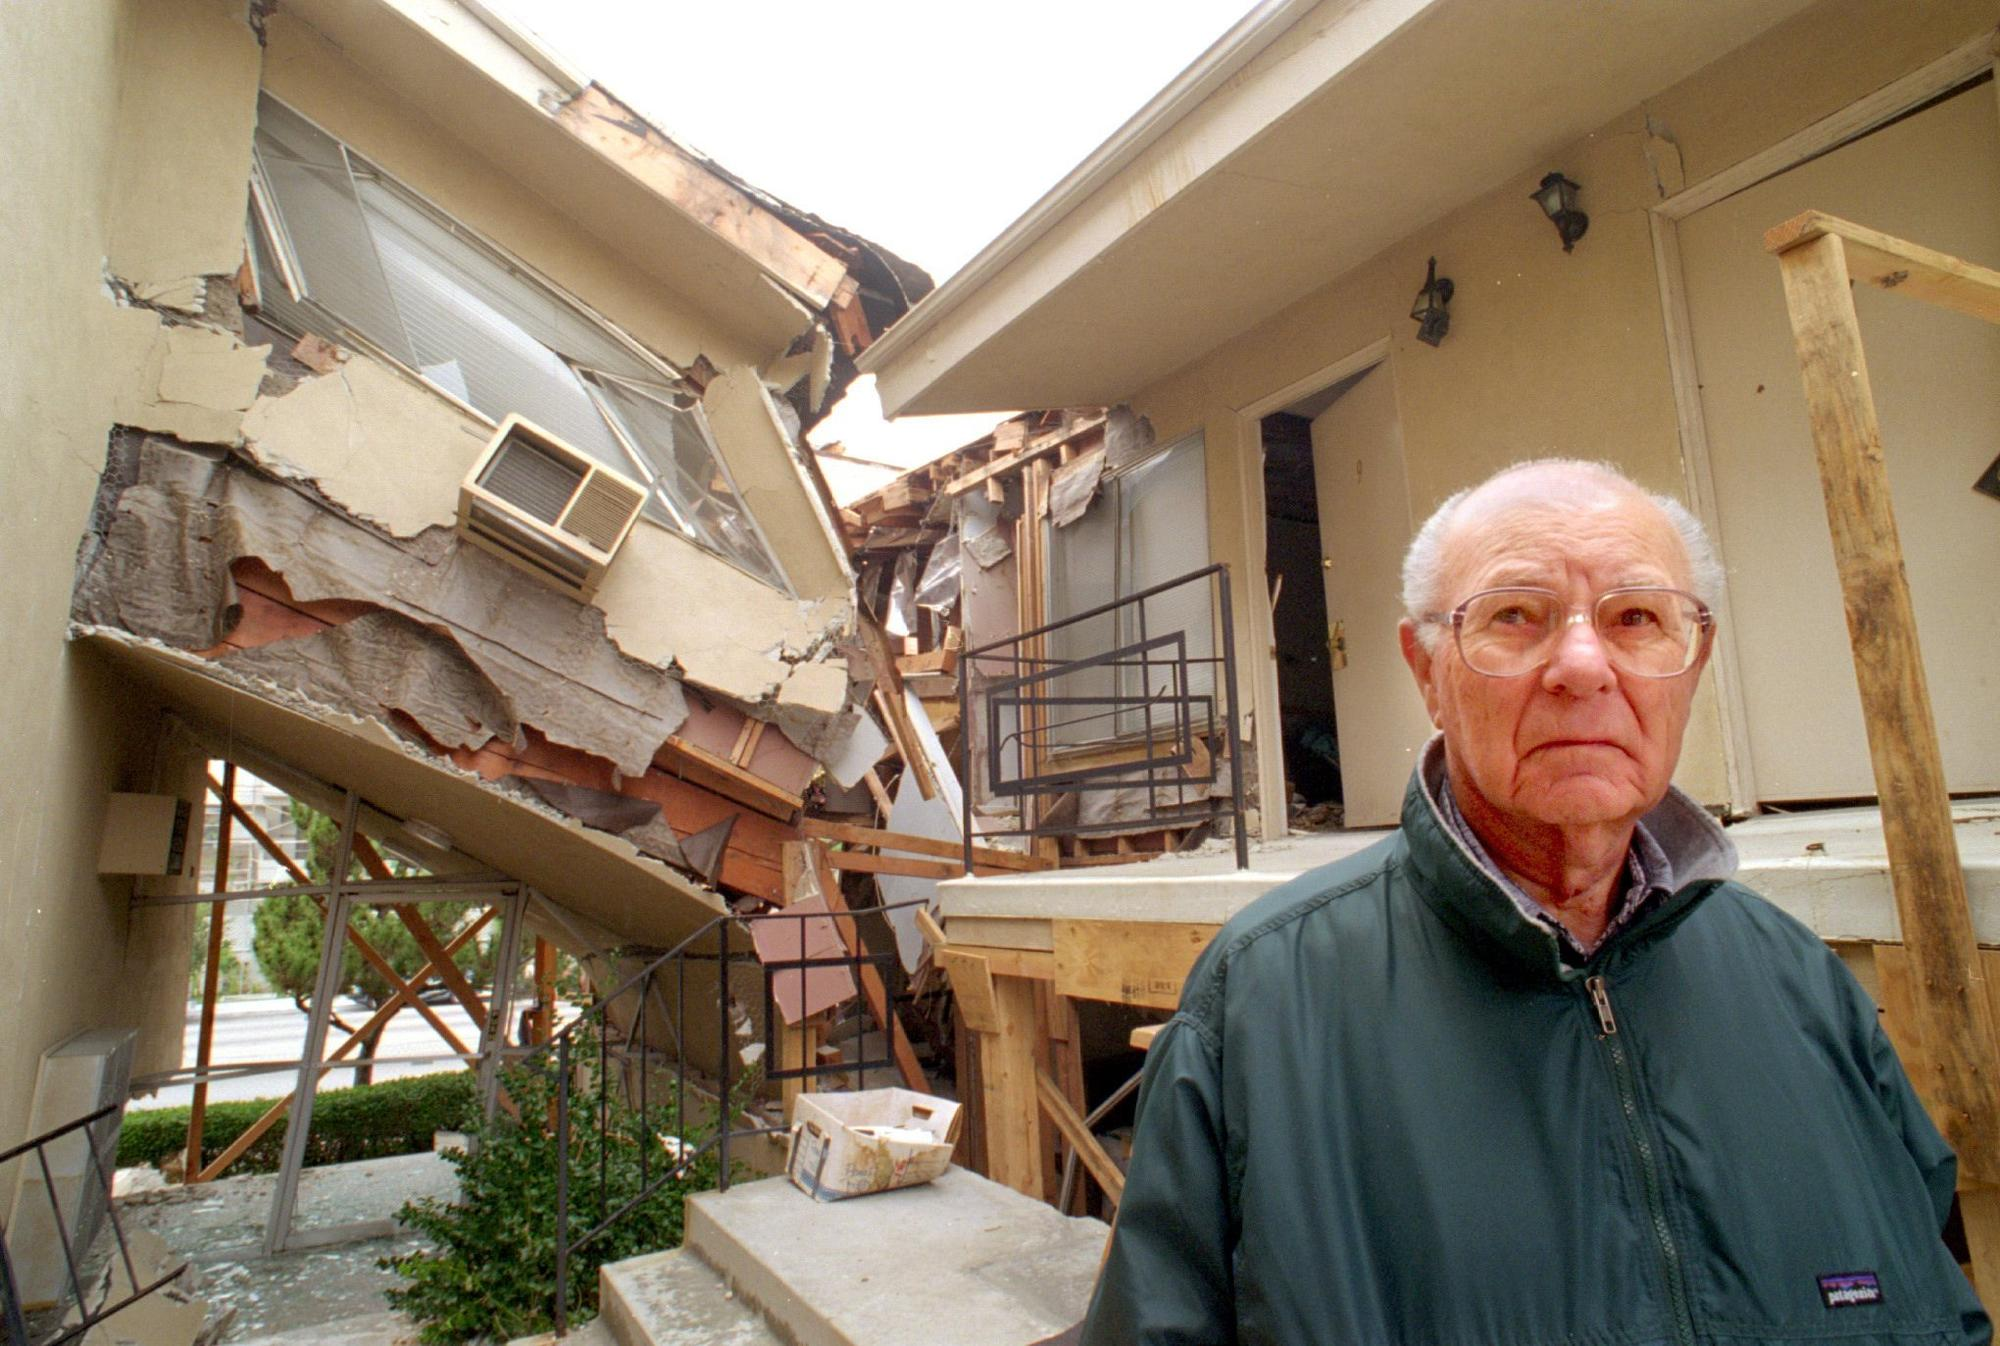 After the 1994 Northridge earthquake, Kenneth Shaffer, with one of his Sherman Oaks buildings, says he lost nearly a quarter of the units he had accumulated over a lifetime of investment.